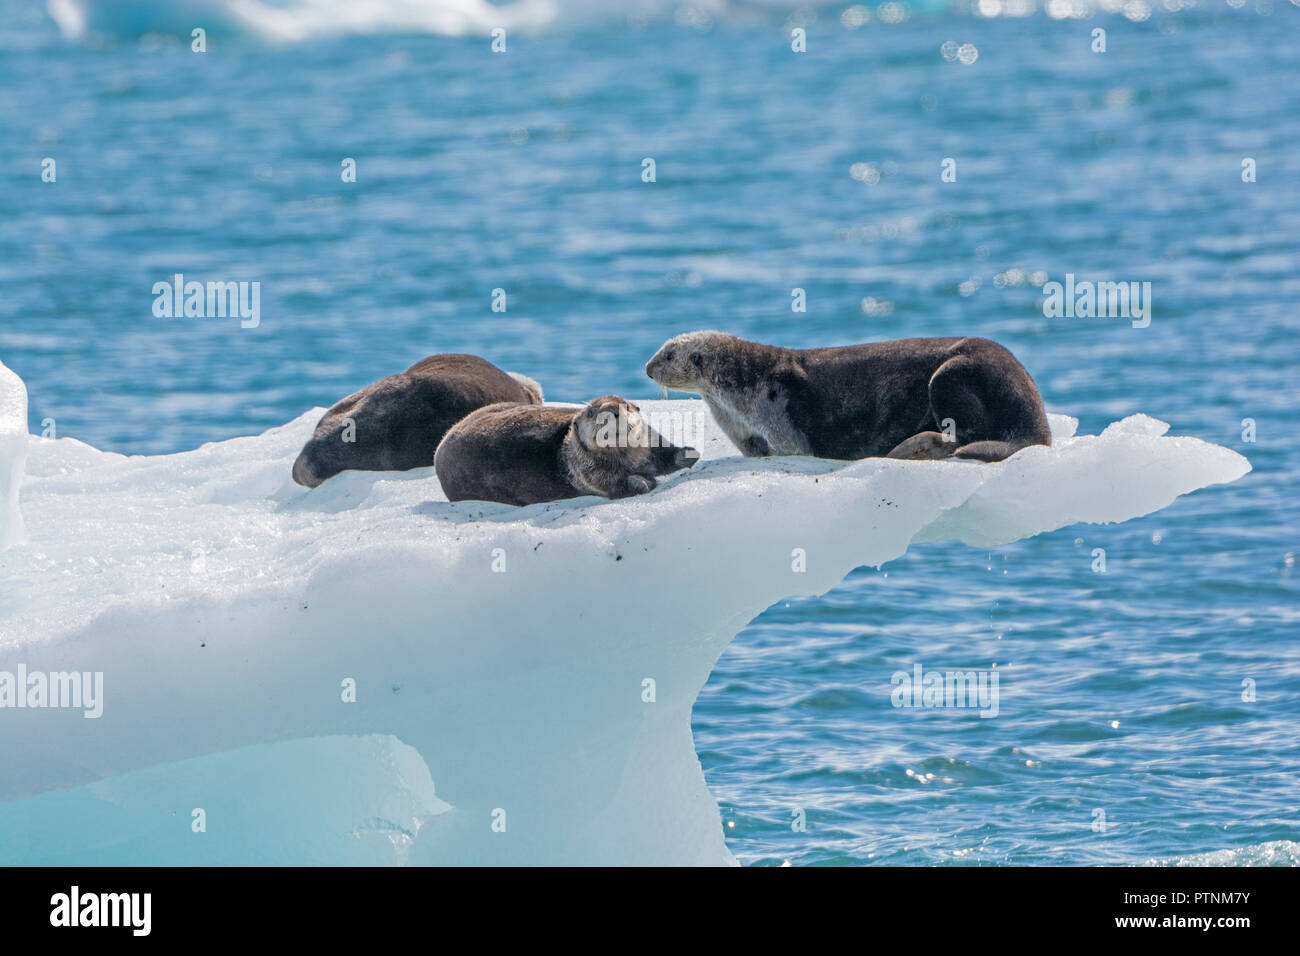 Sea Otters on an Ice Berg in Prince William Sound by the Columbia Glacier in Alaska - Stock Image